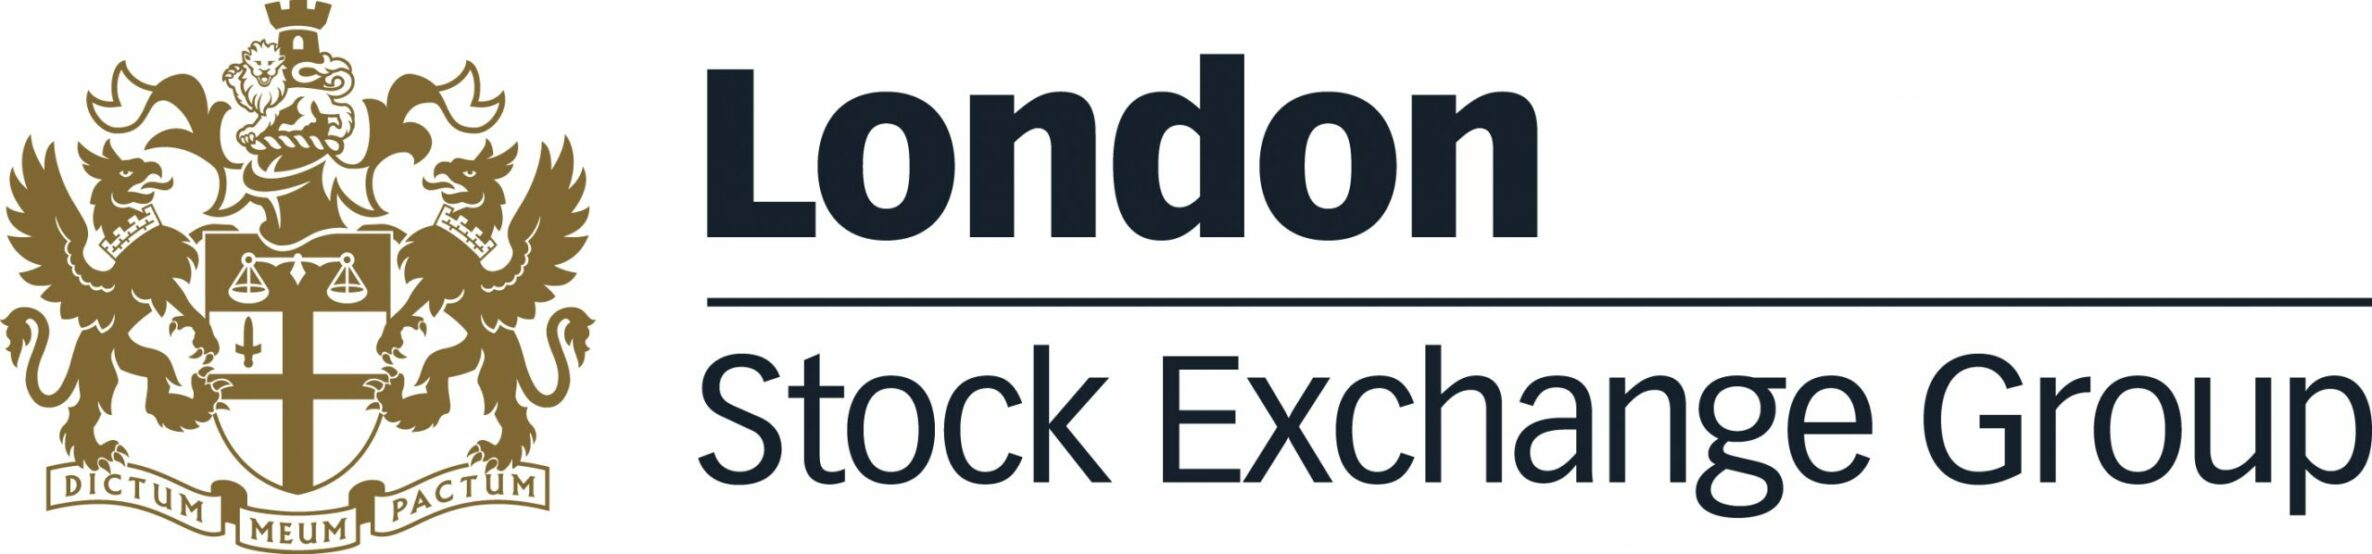 London Stock Exchange Group (LSEG) Logo